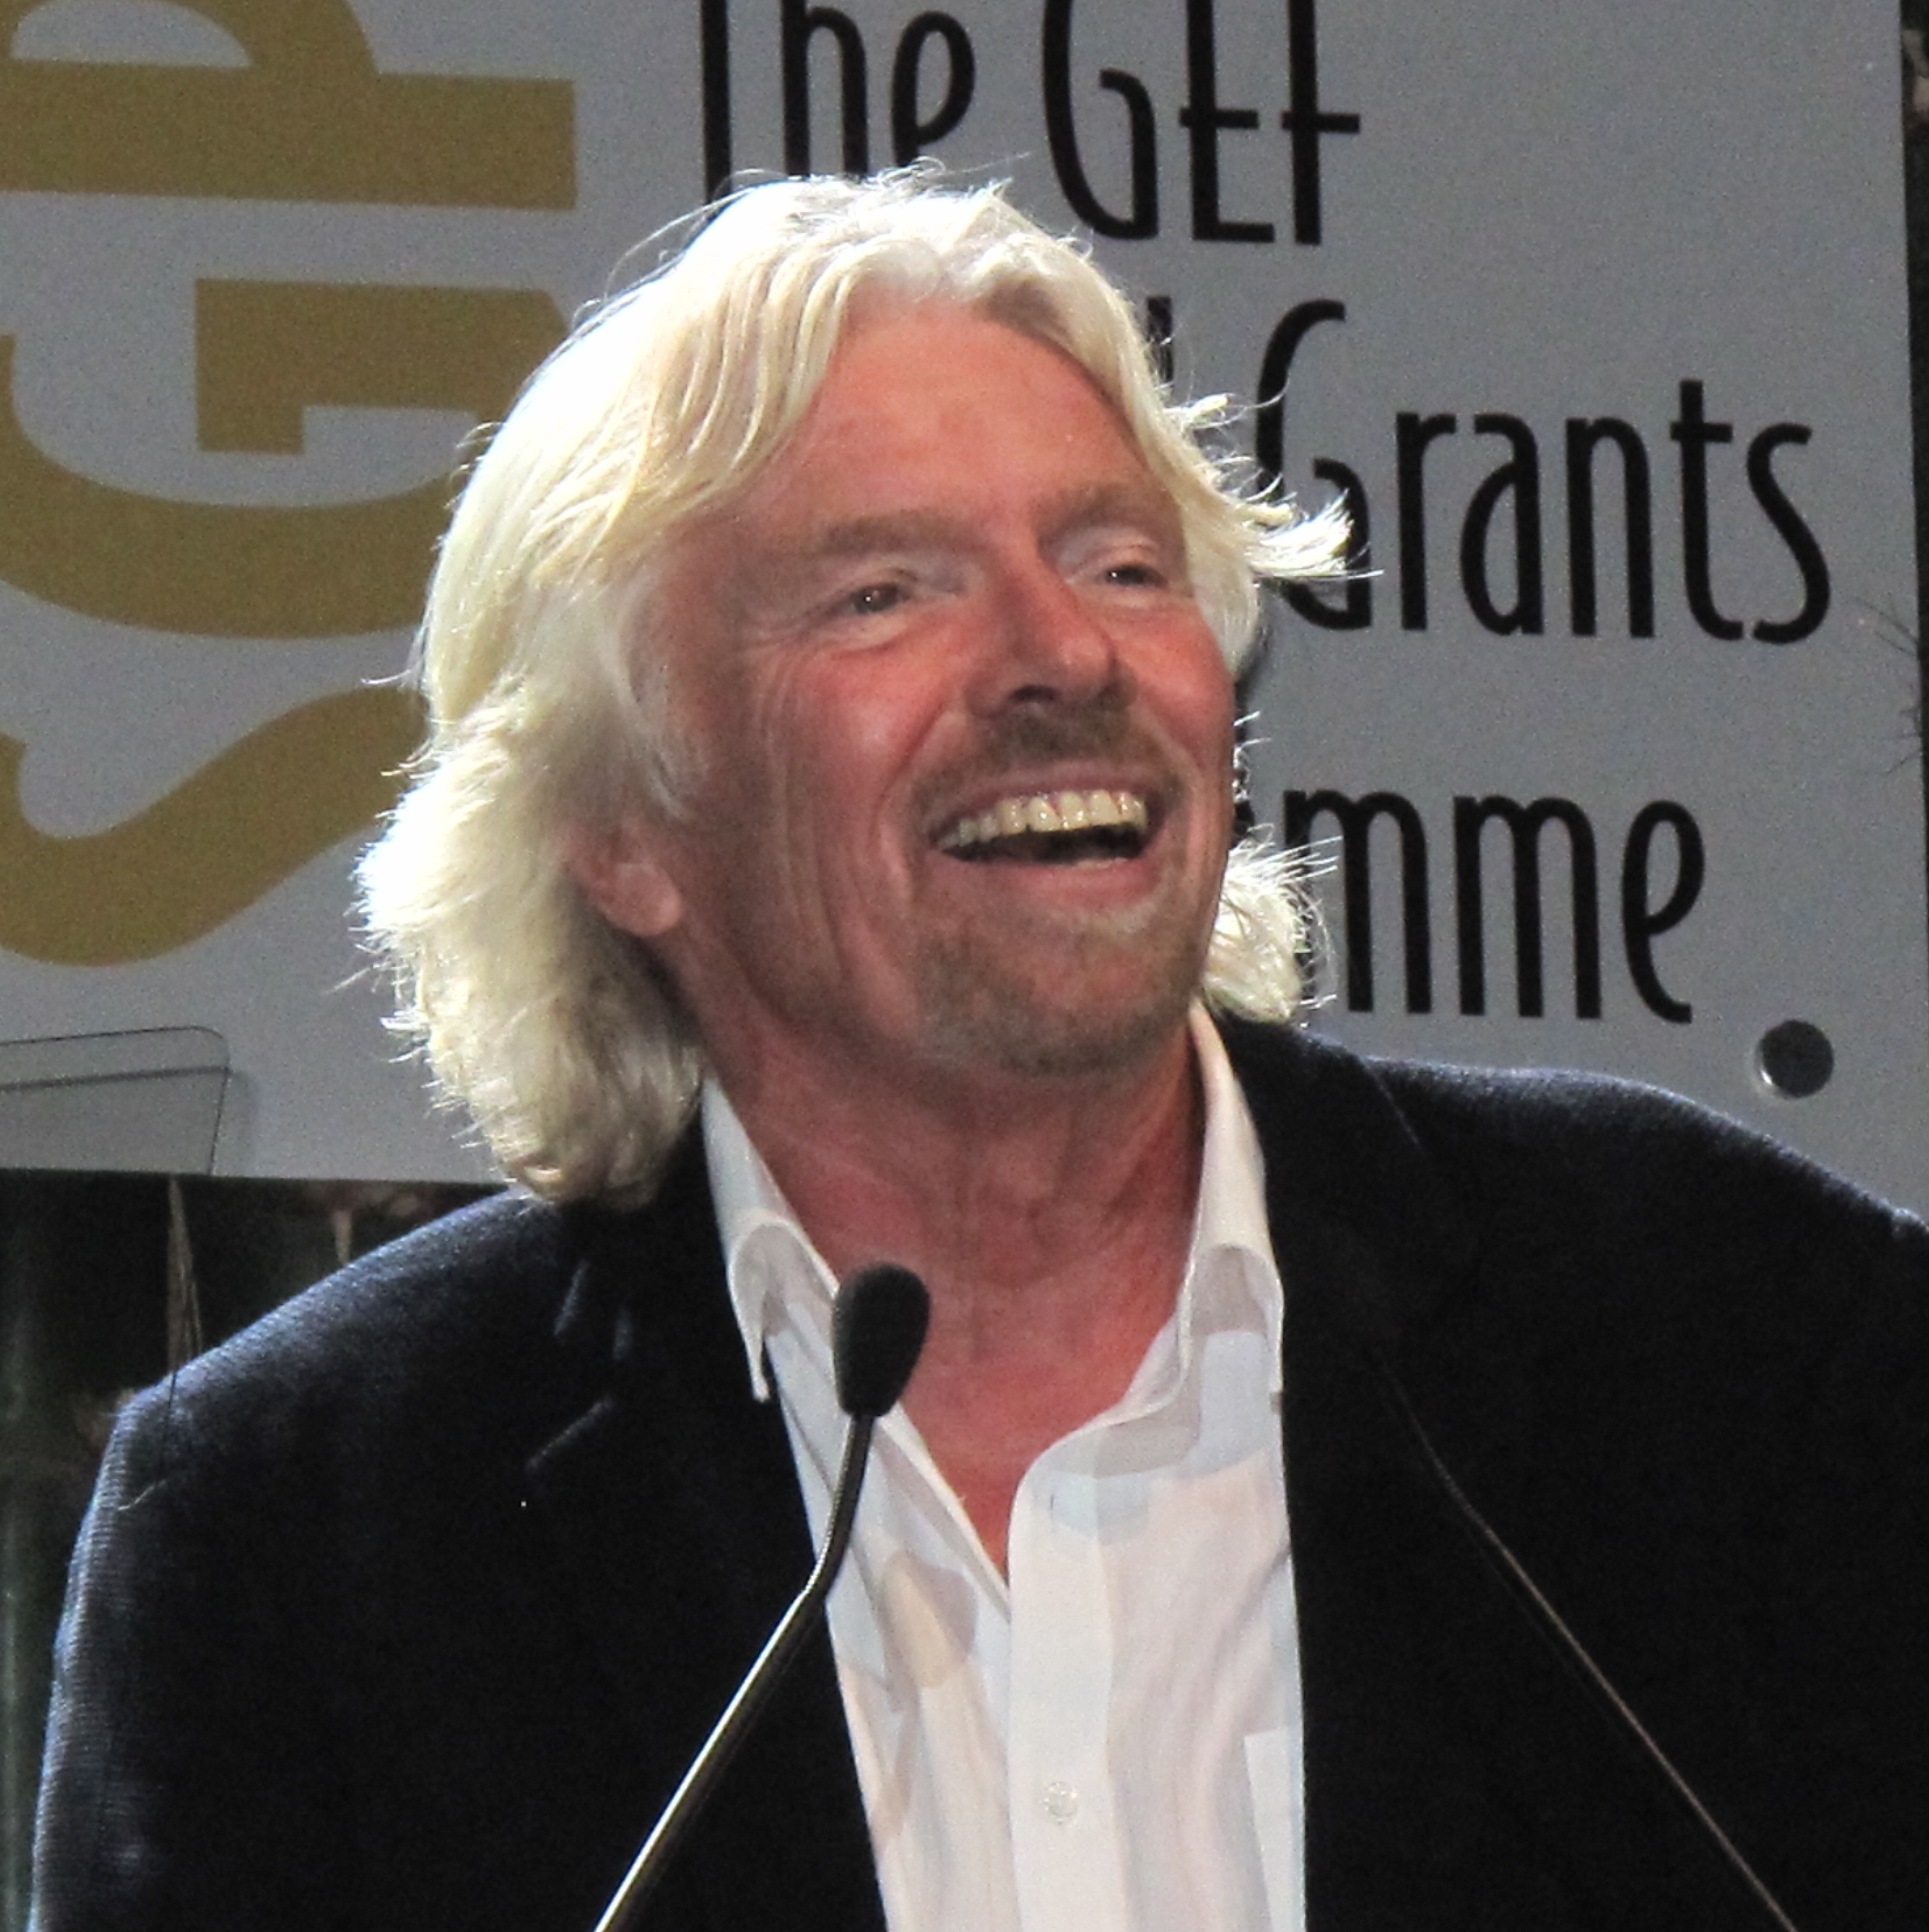 Richard_Branson_Quotes